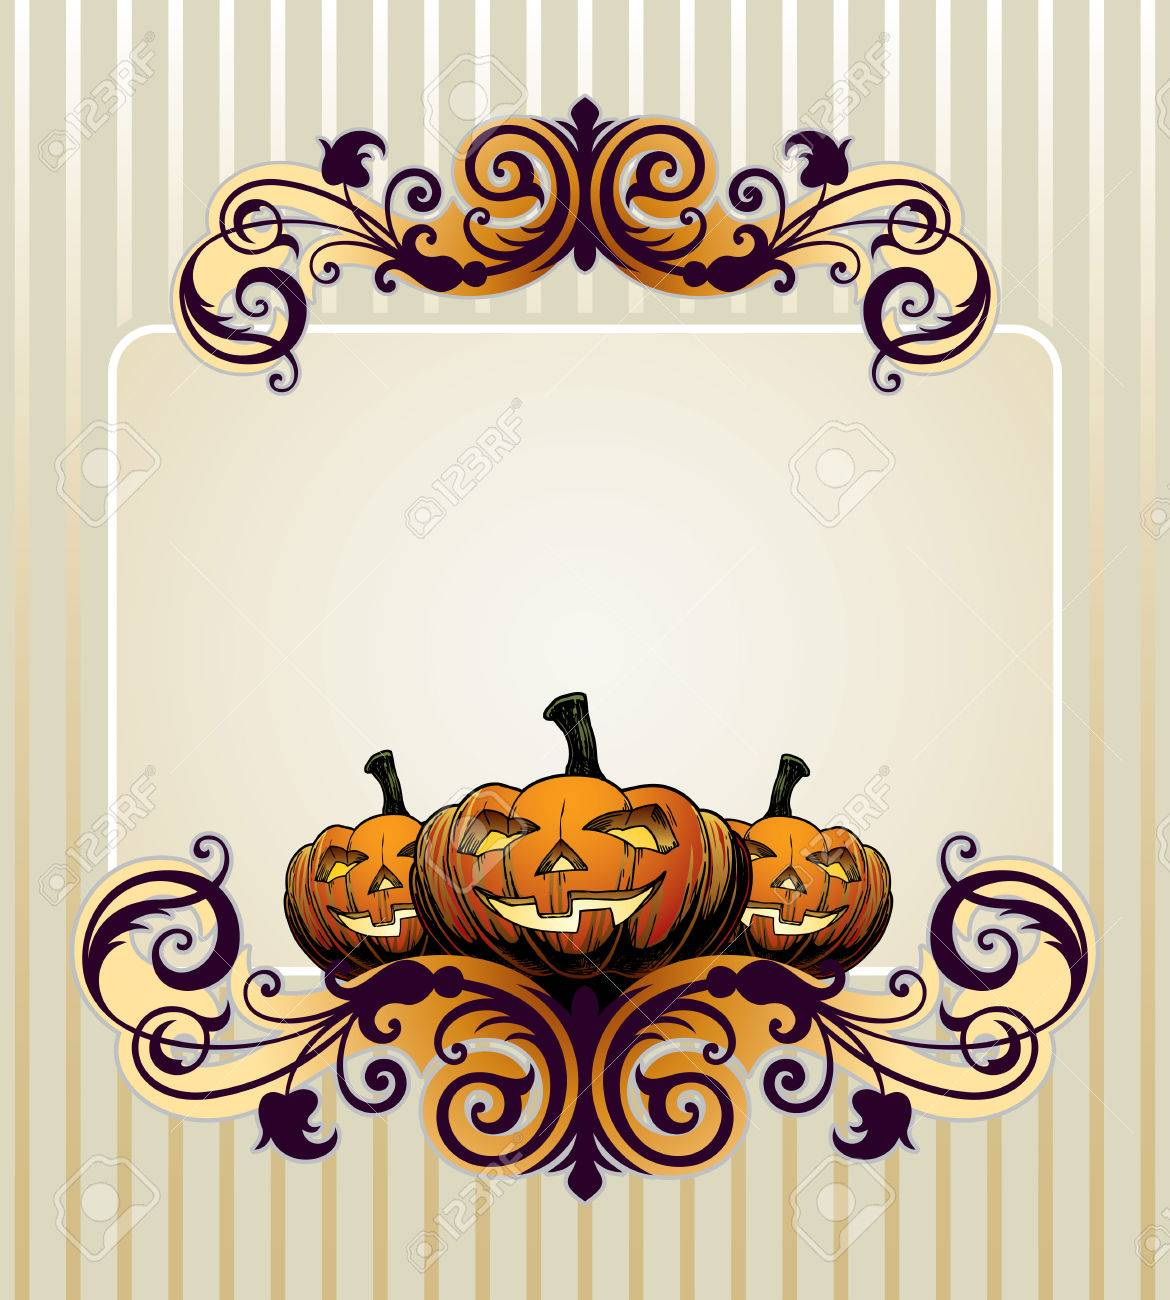 Halloween Invitation Or Background With Pumpkin Stock Vector